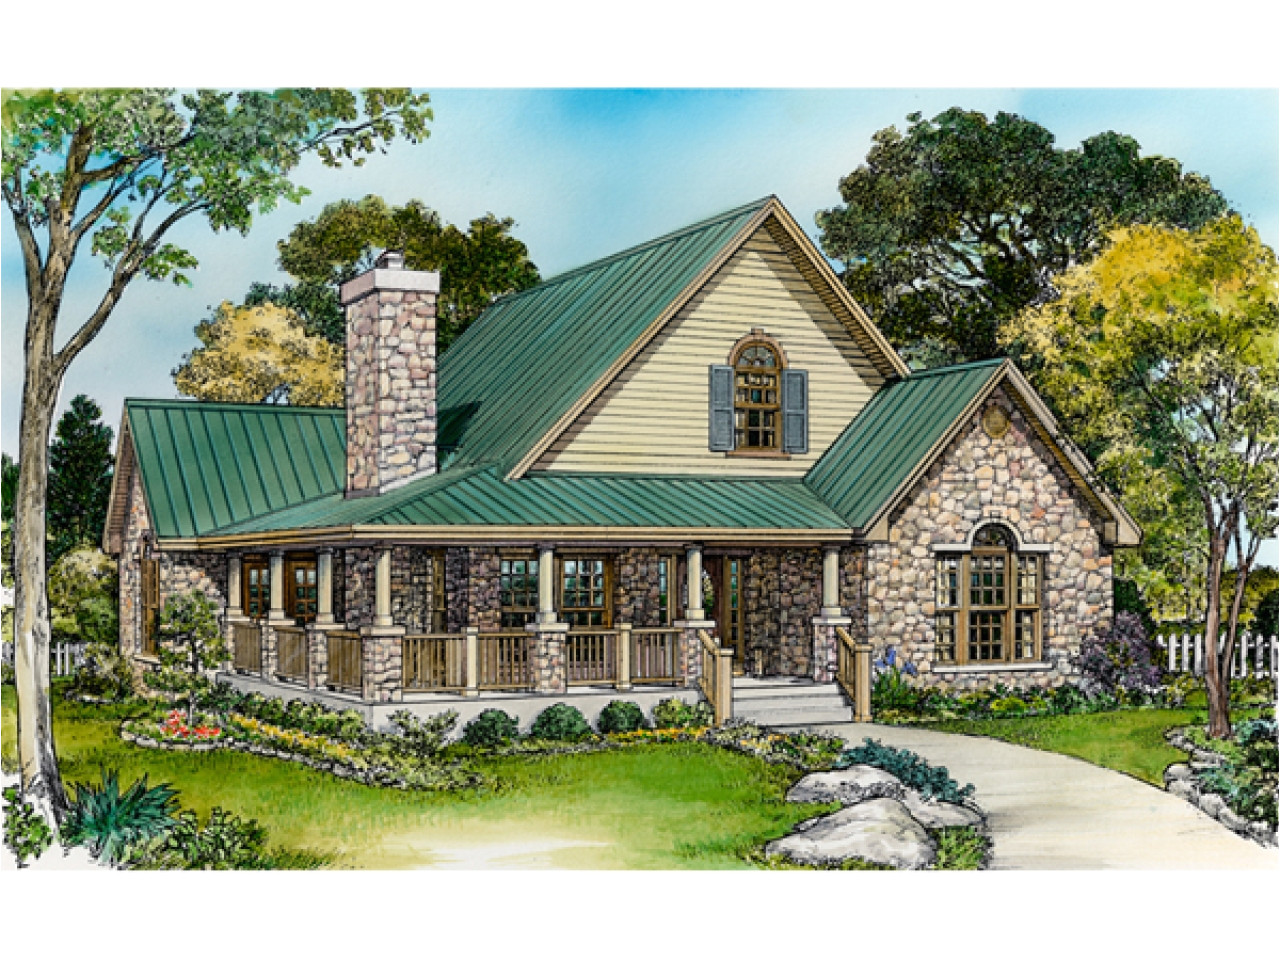 1d4a3e4ddda74068 small rustic house plans with porches unique small house plans